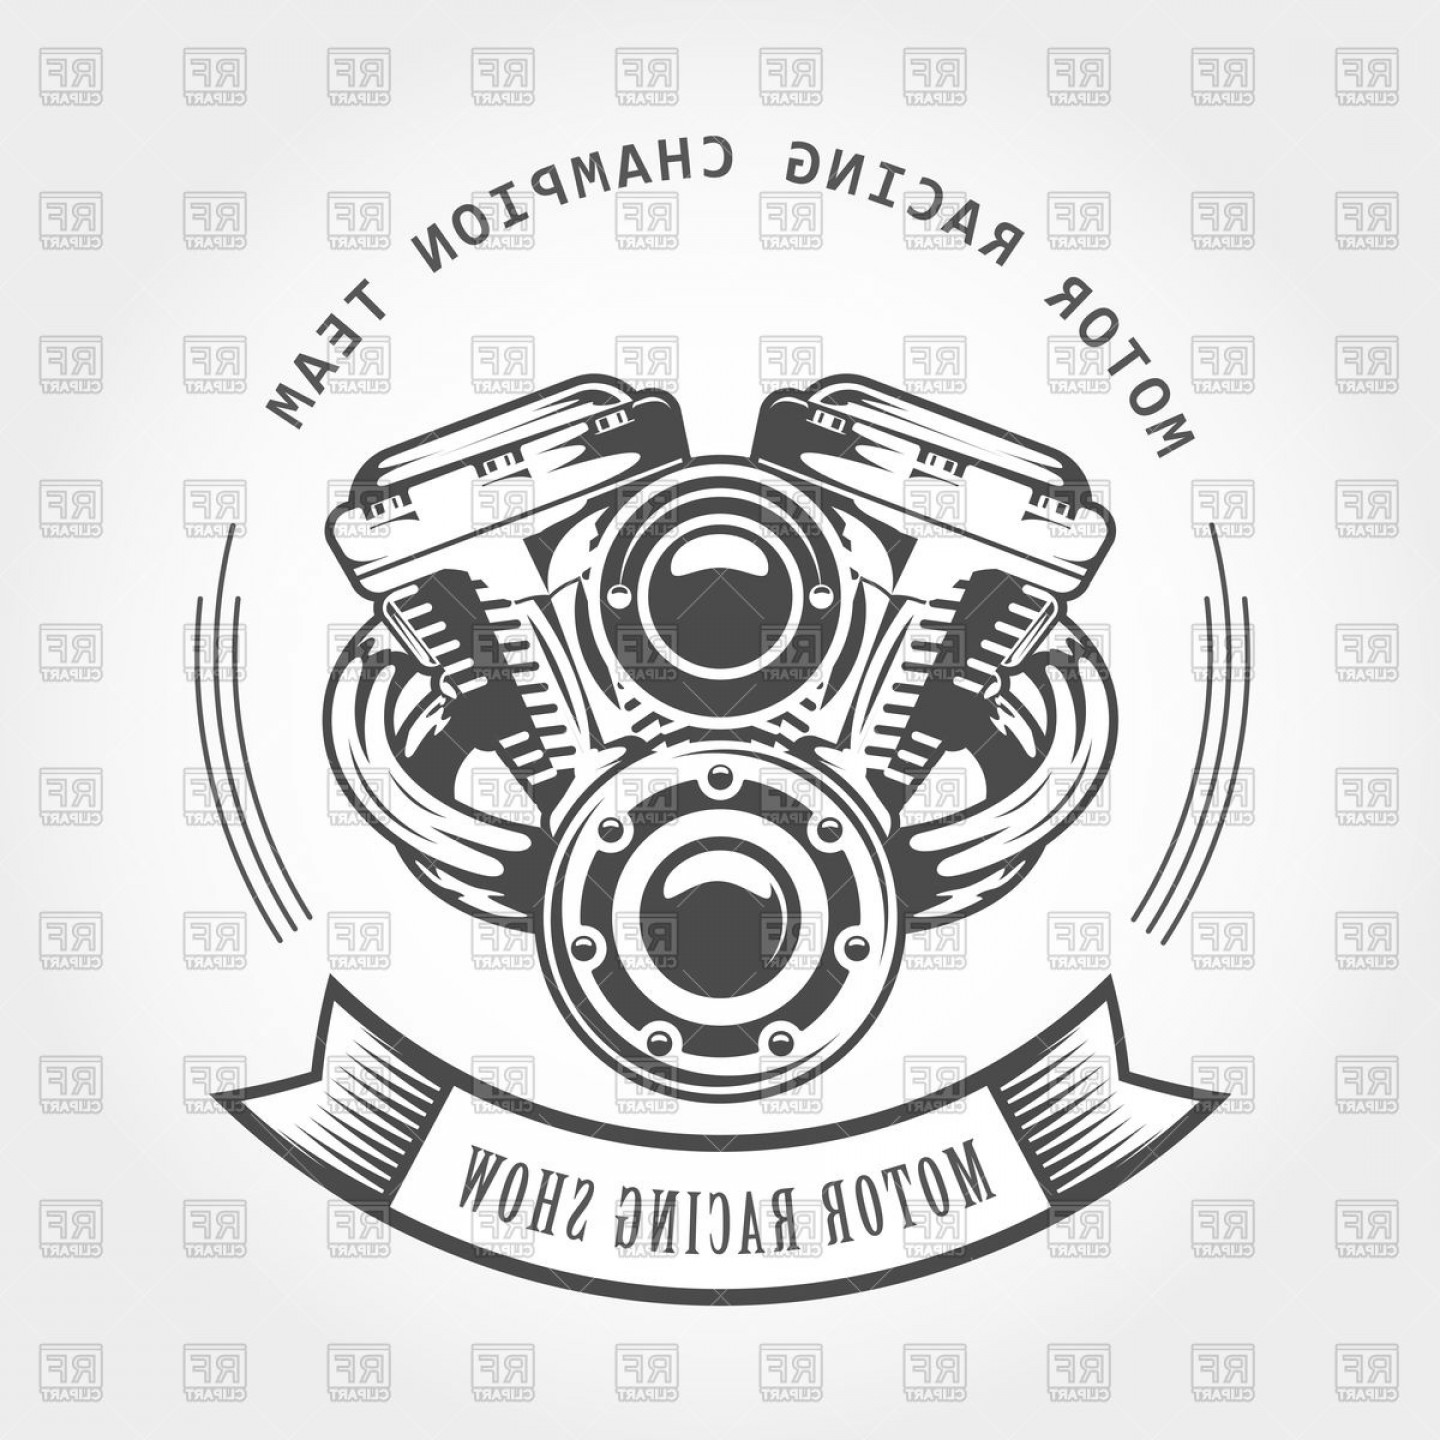 Motor Vector Graphics: Motorcycle Engine Chopper Motor Bike Show Emblem Vector Clipart